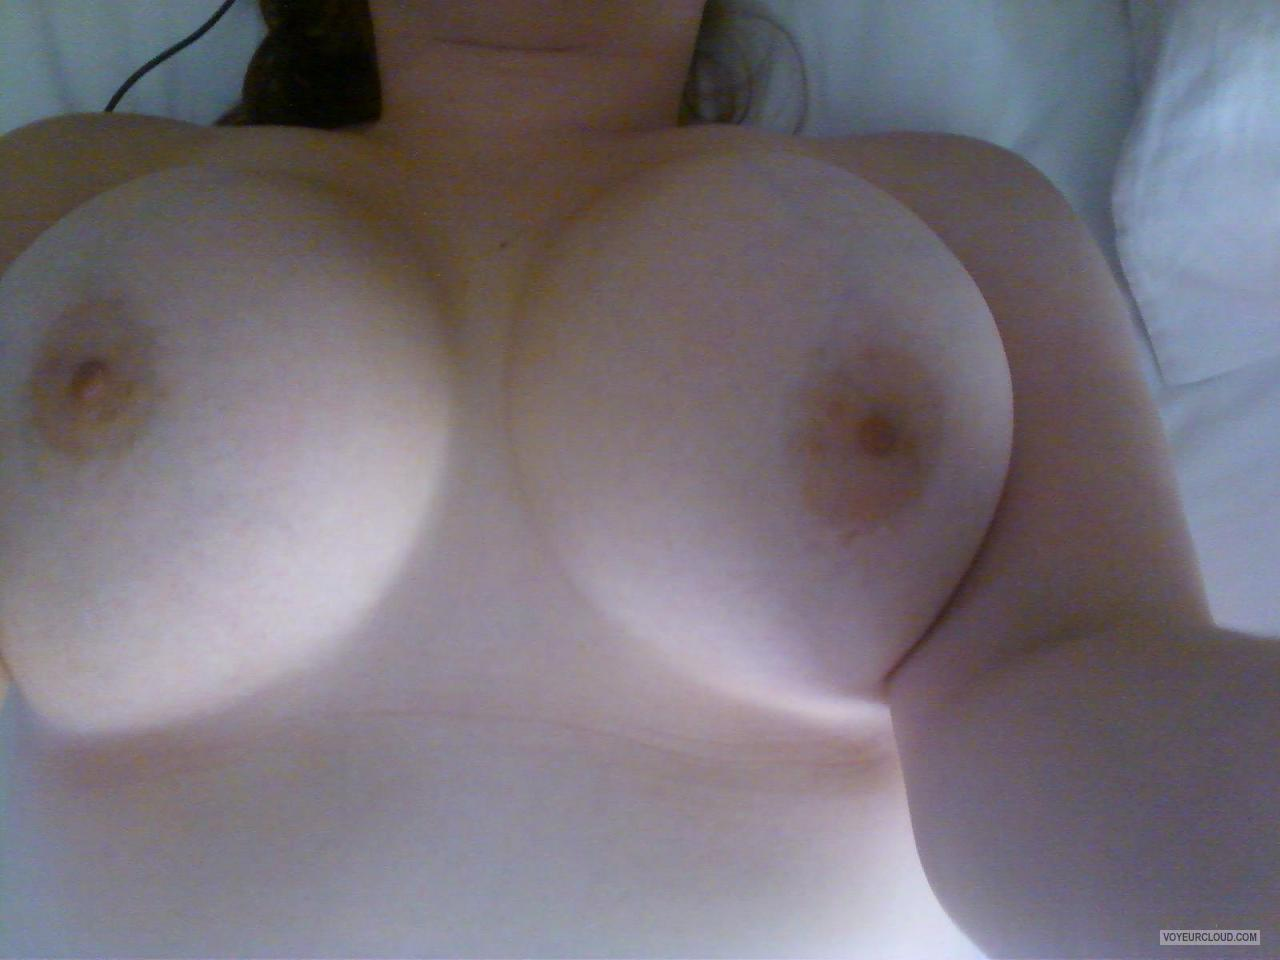 Tit Flash: My Tanlined Big Tits - Charlotte Erickson from United States